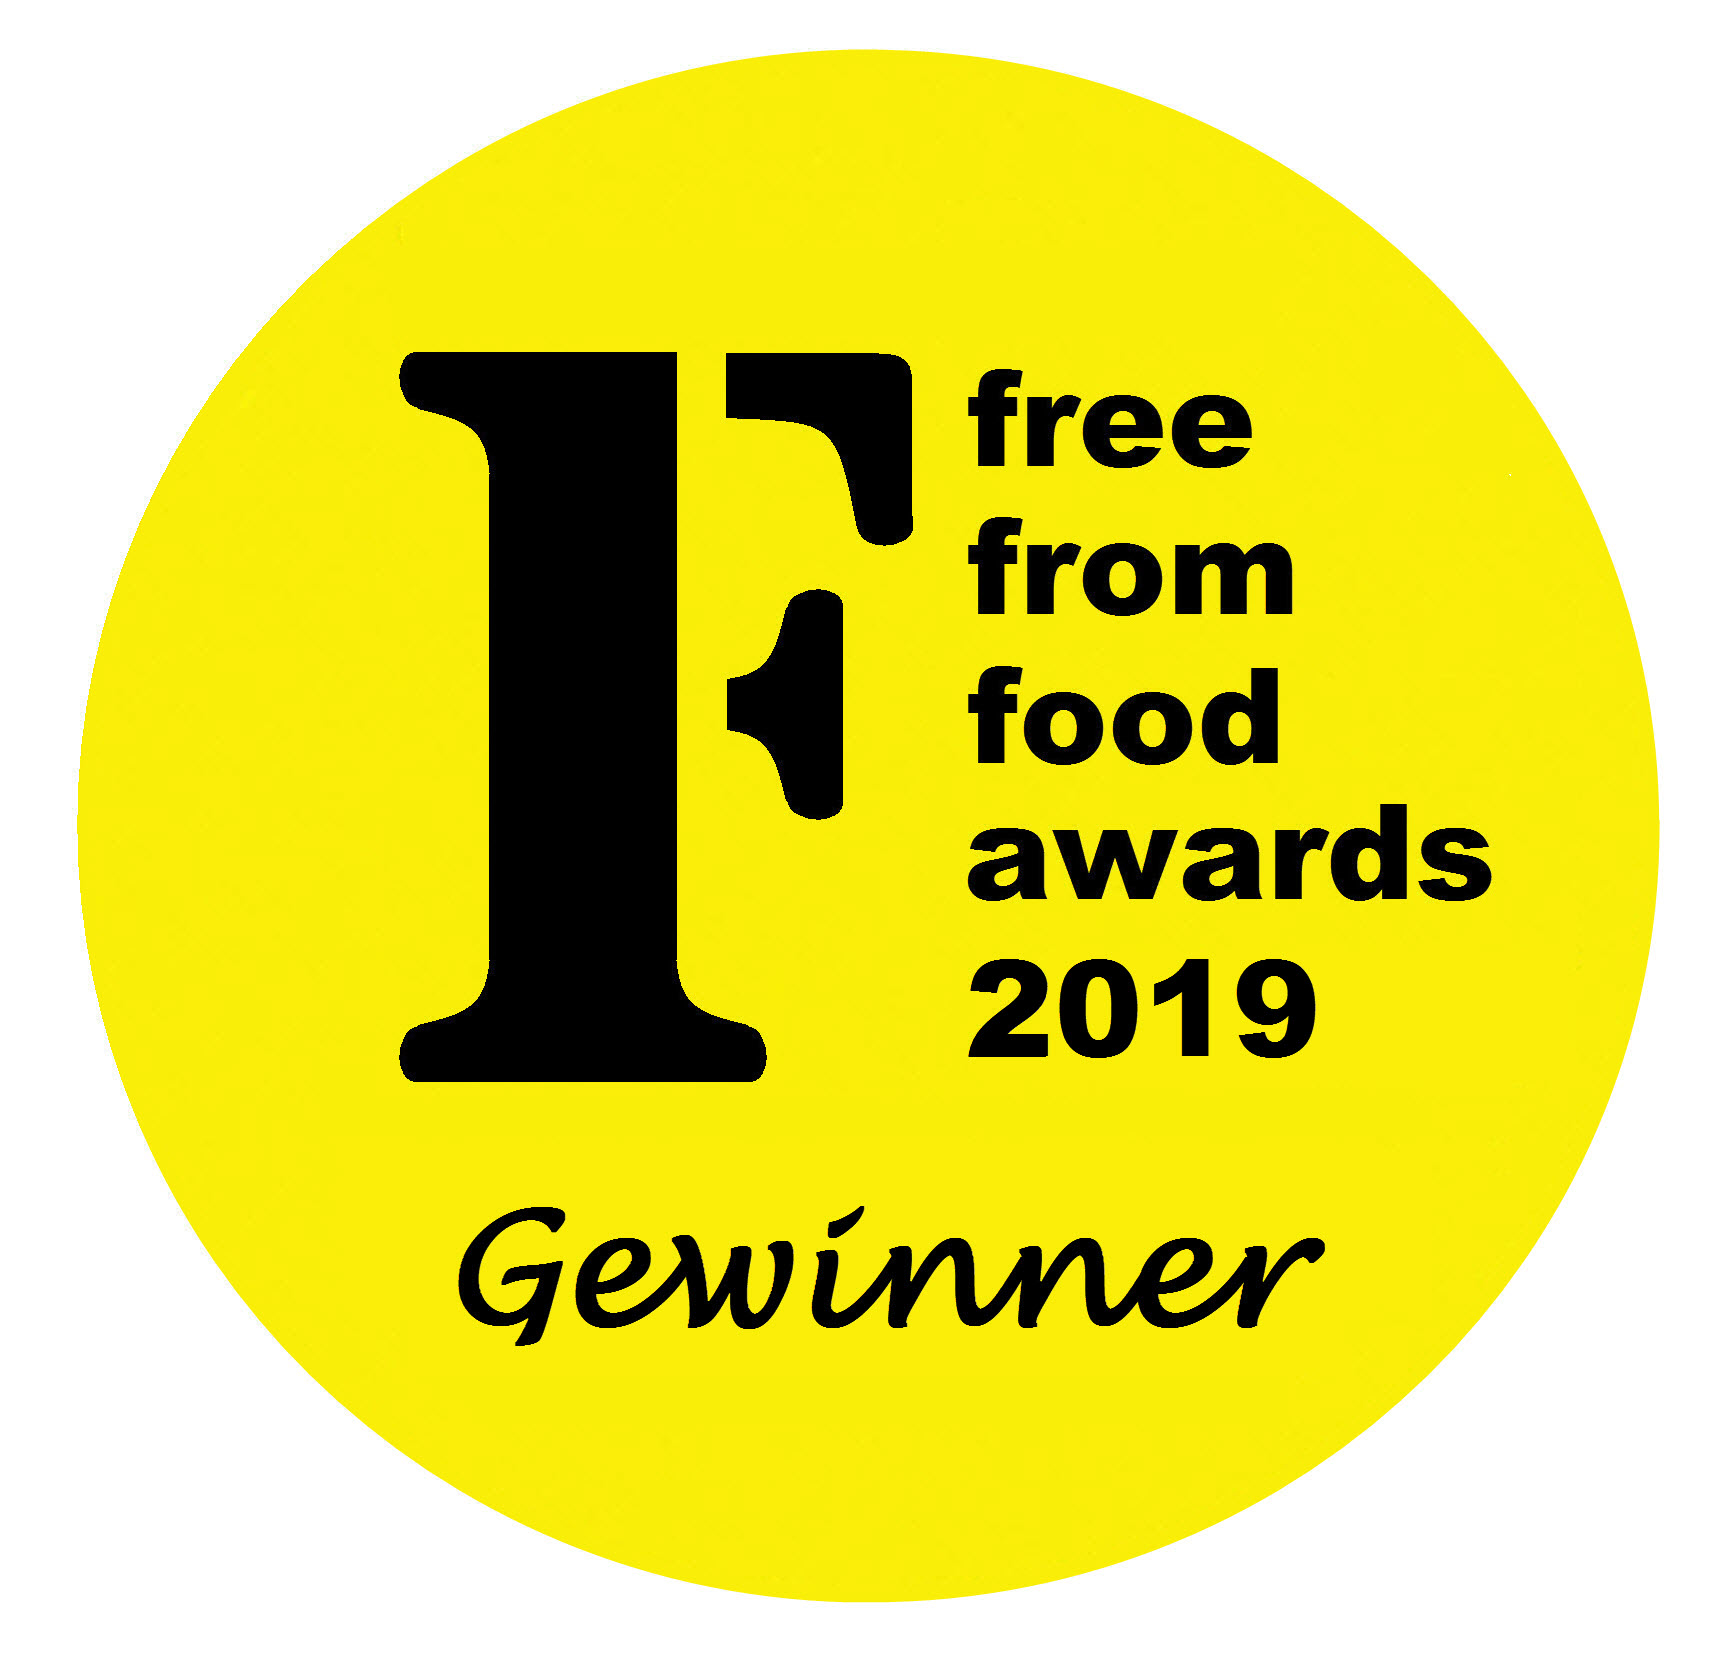 Gewinner Free From Food Awards 2019